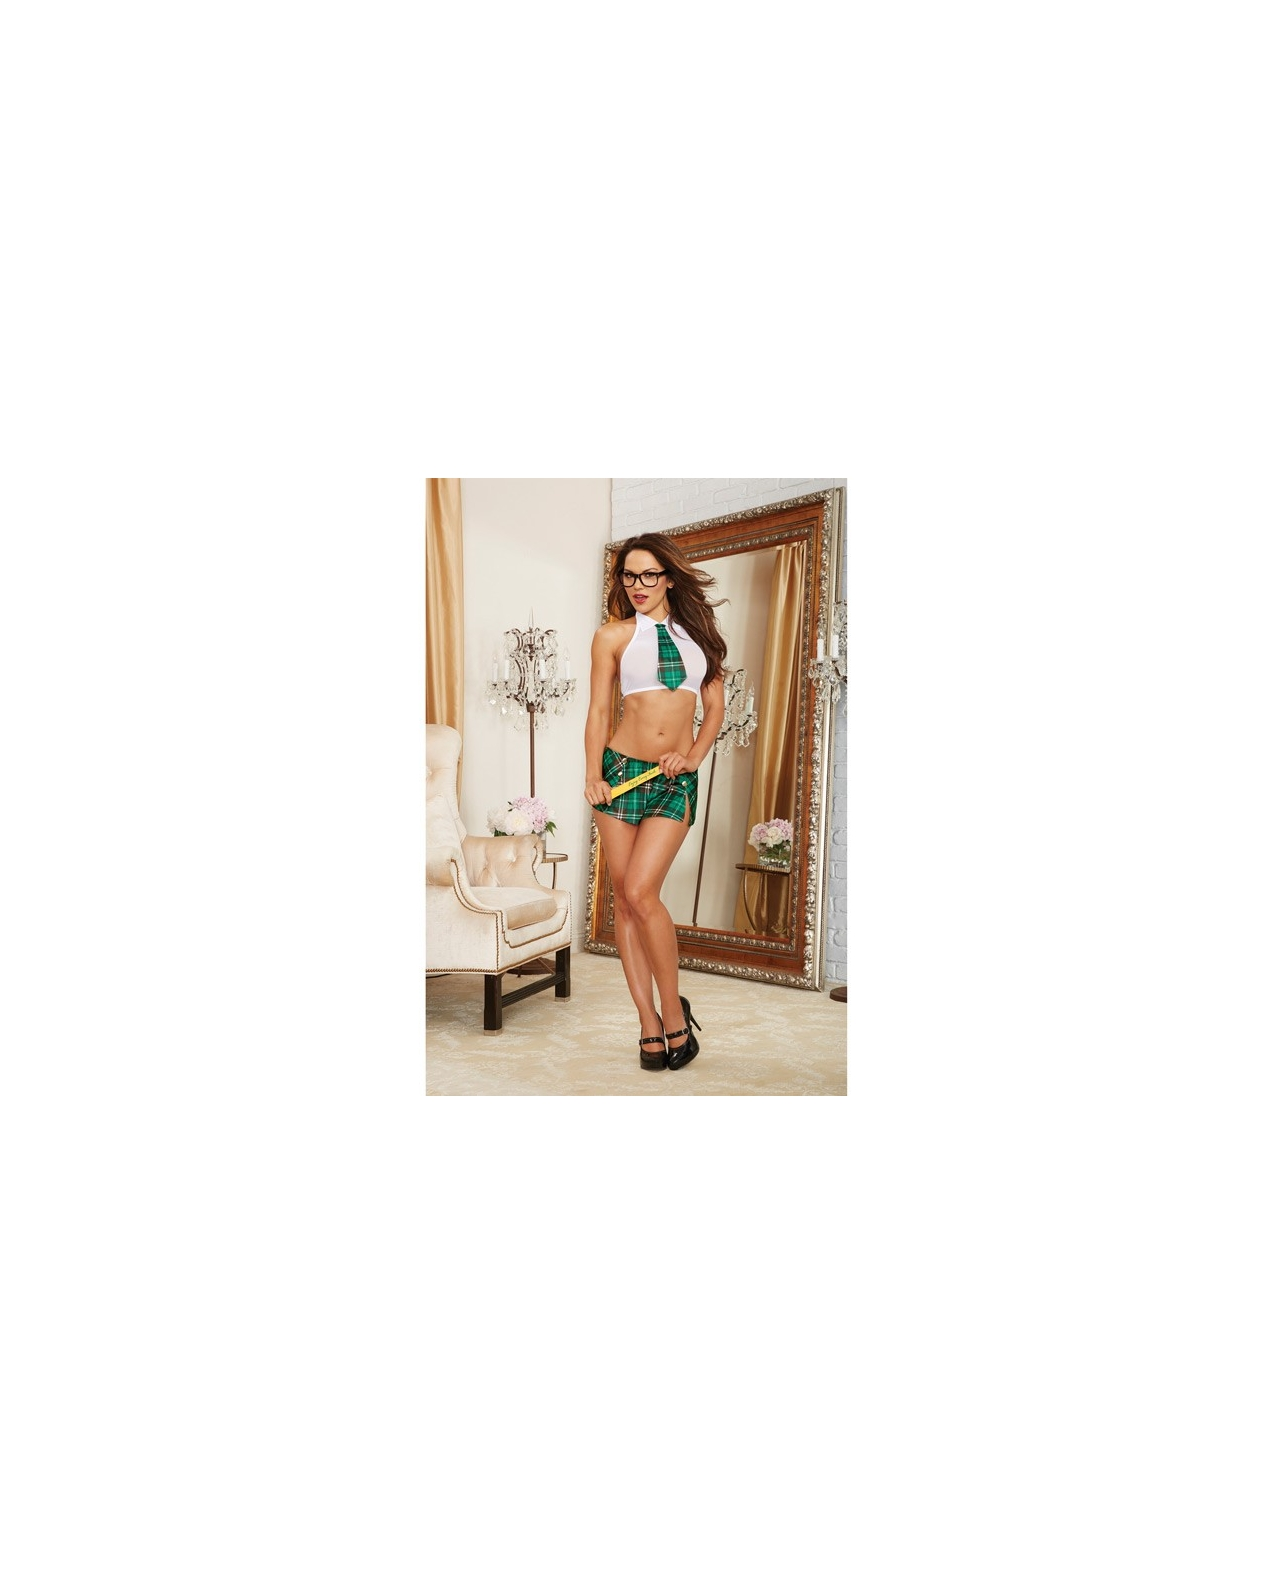 4 pc Stretch Mesh Halter Crop Top w/Attached Tie, Mini Skirt, Glasses & Ruler Green Plaid O/S